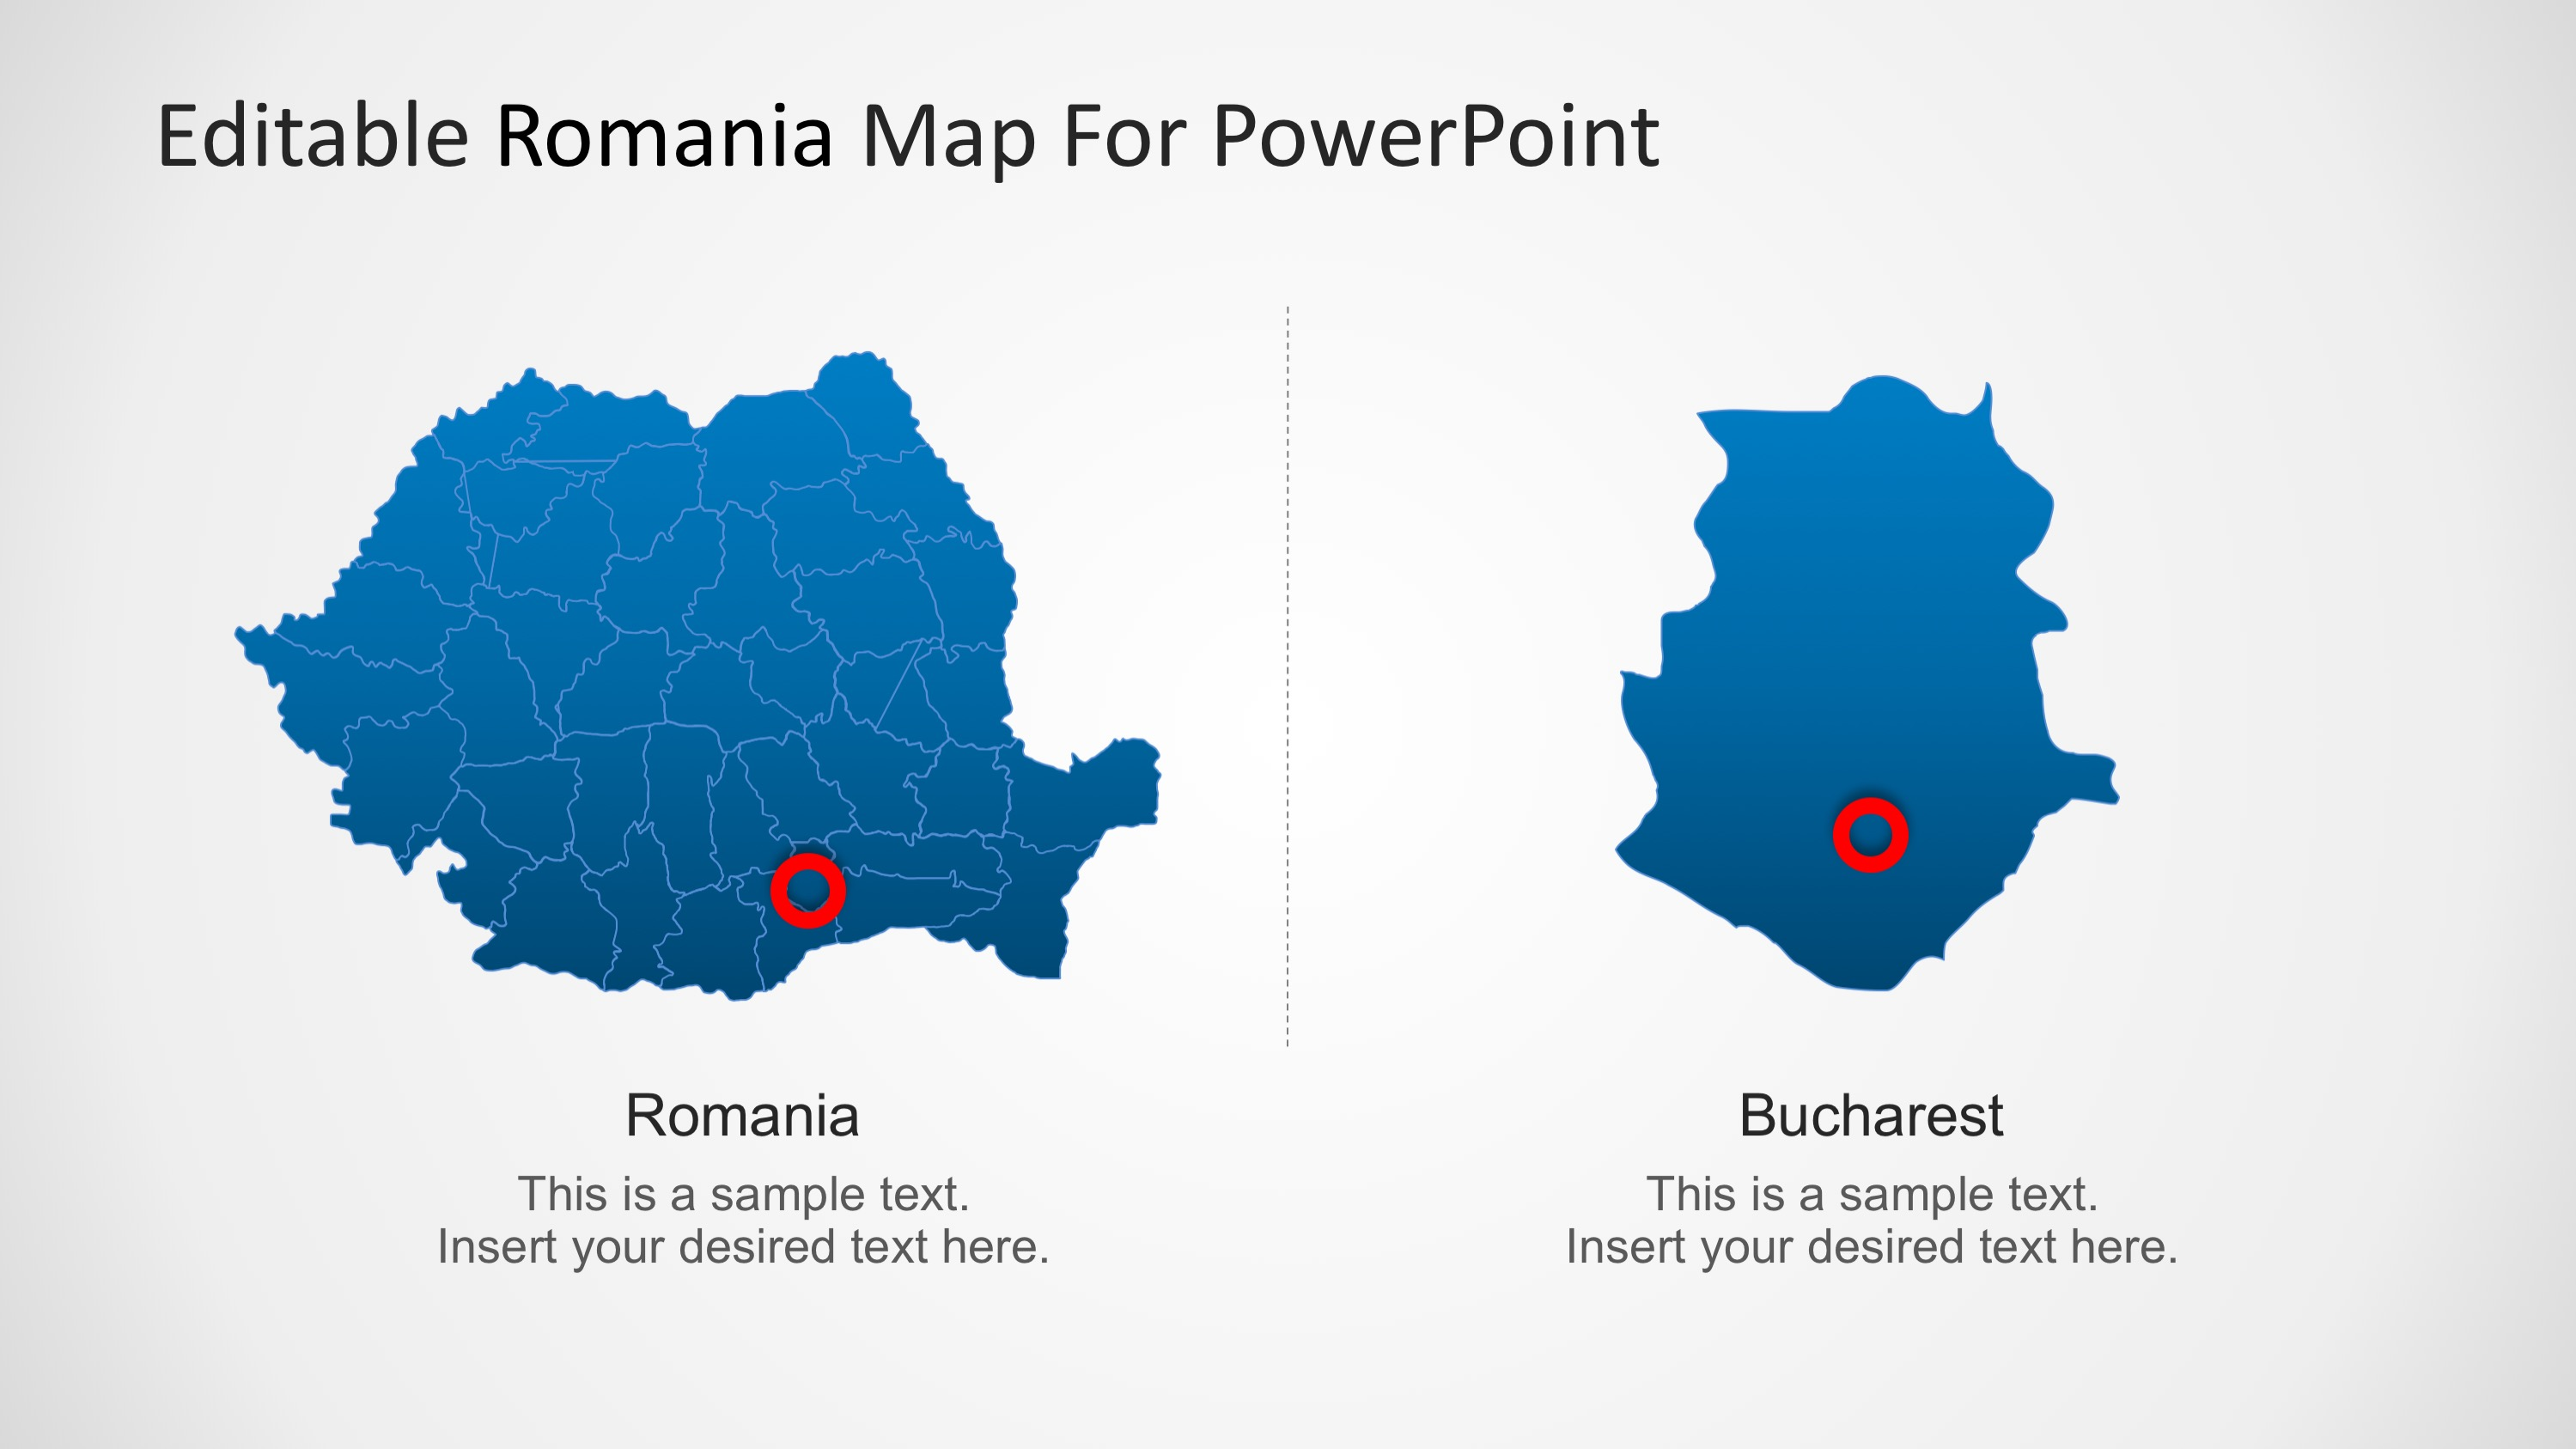 PPT Map of Romania with City Marker